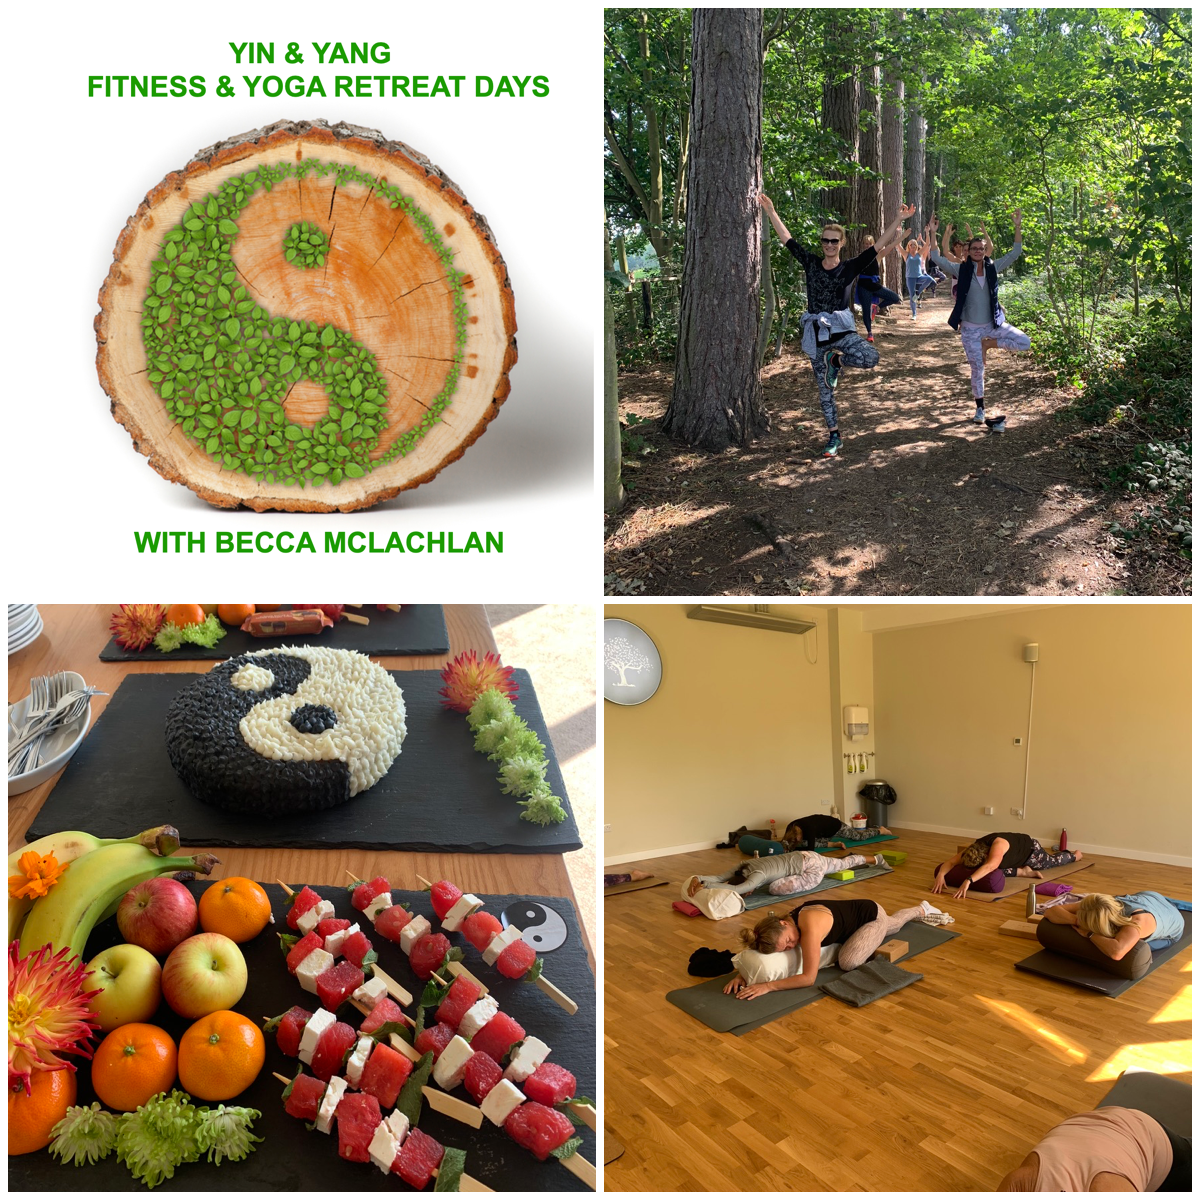 Yin & Yang Fitness & Yoga Small Group Retreat Day - £70